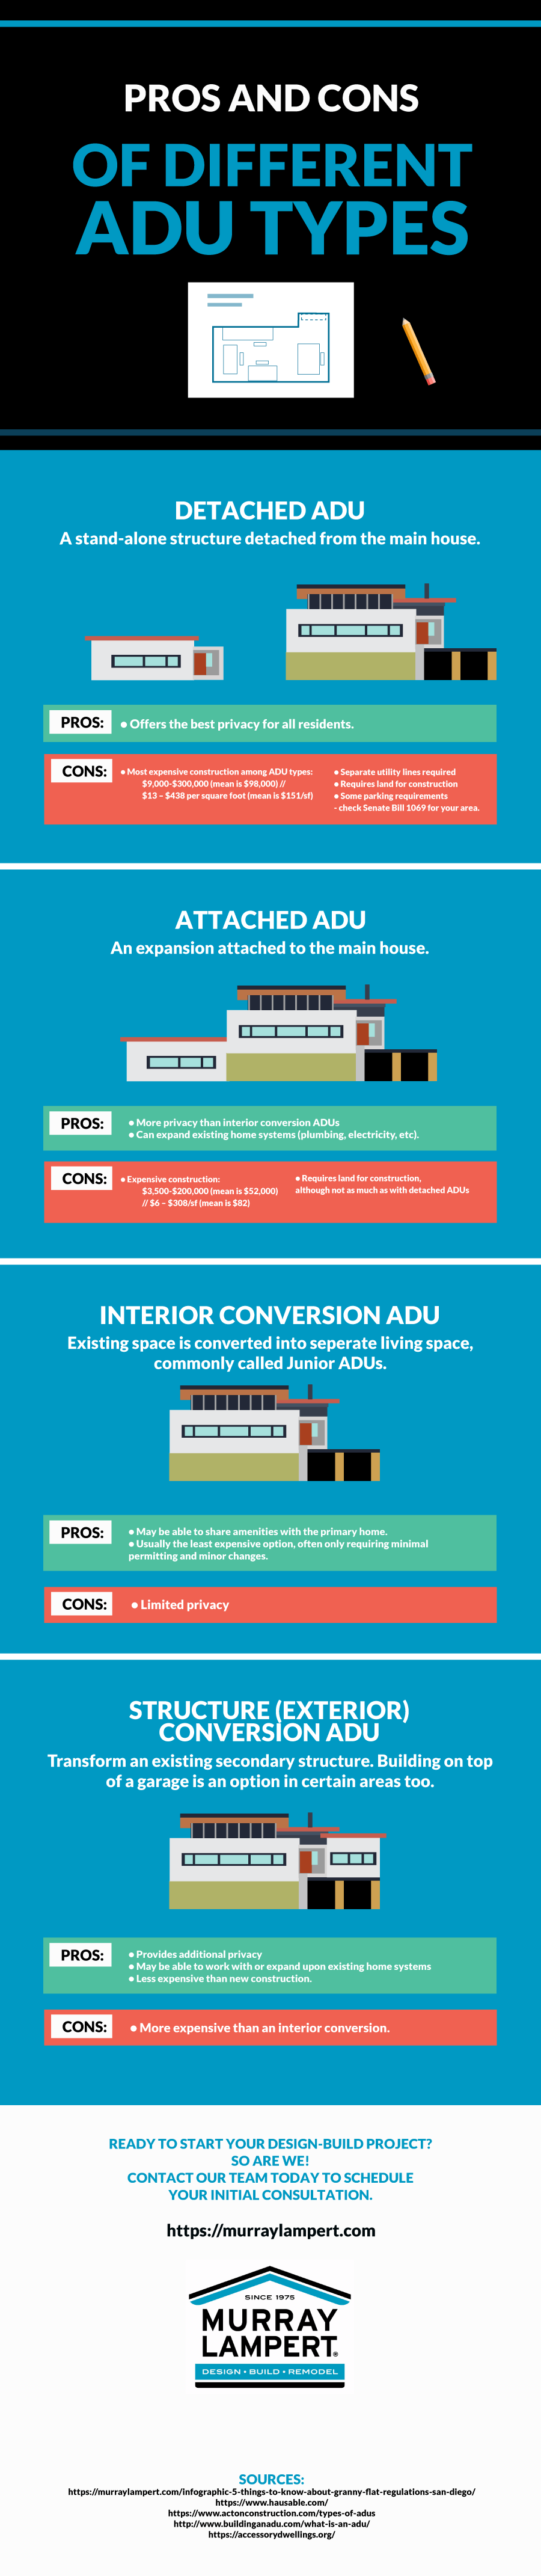 Pros and Cons of Different ADU Types